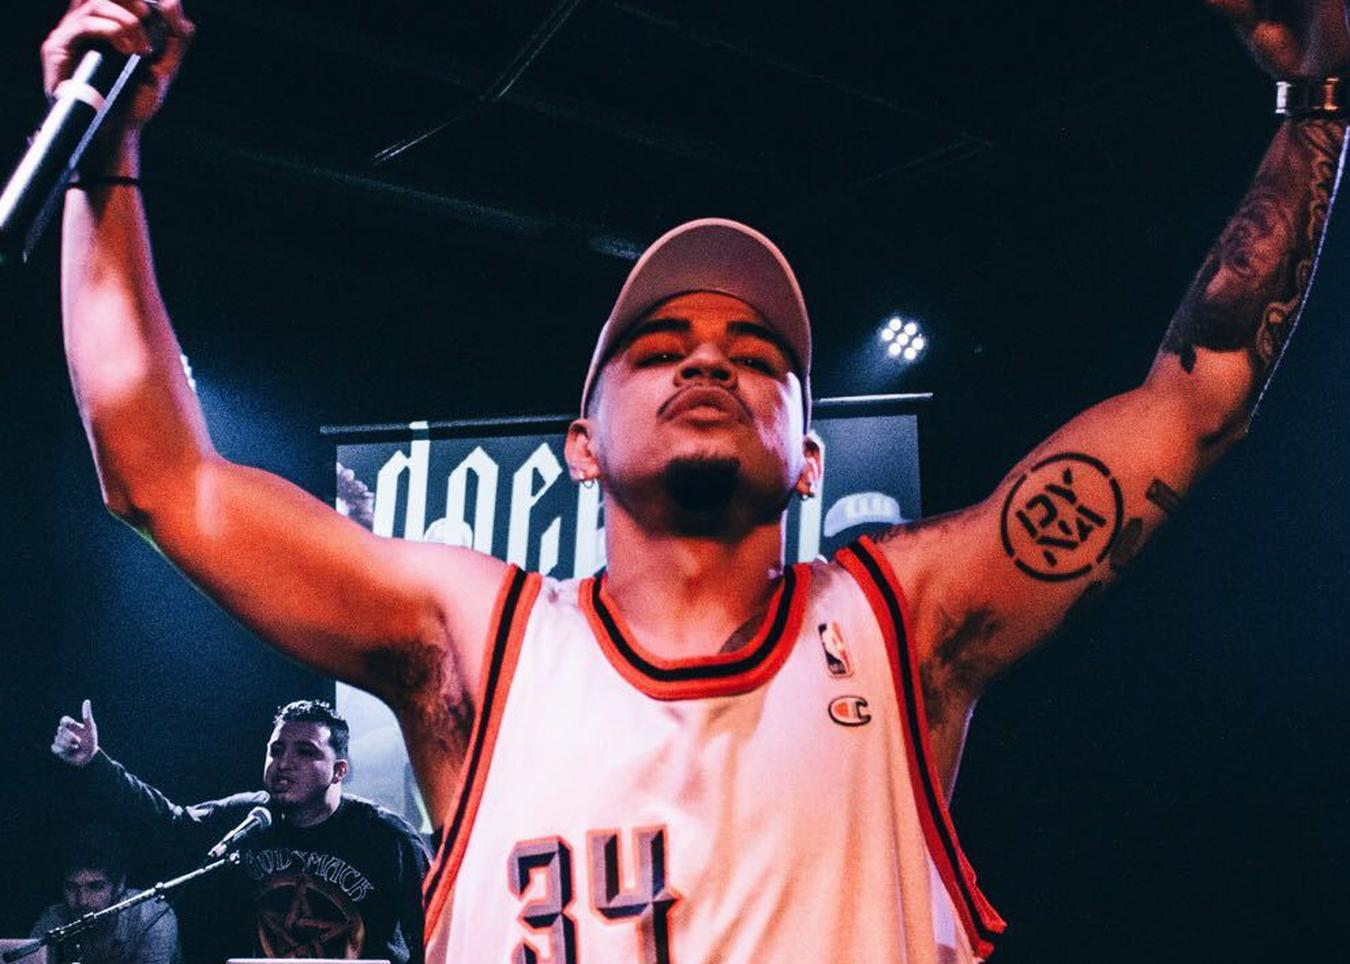 Doeman - The Music Preview Guide To SXSW 2019